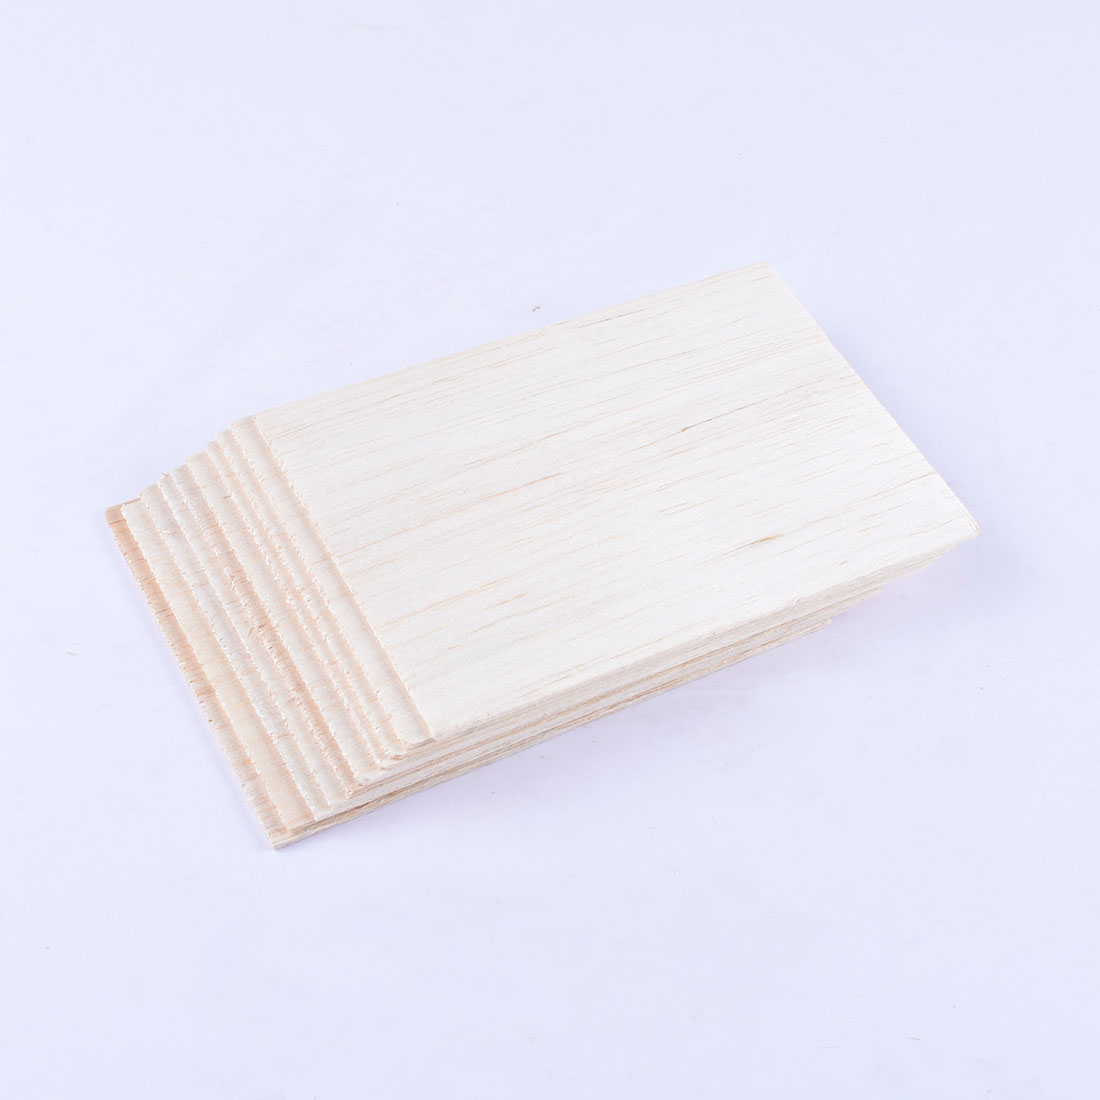 10pcs 100x150x2mm Thin Wood Board Panel Plaque For DIY Handmade Arts Craft Decor Building Model Materials